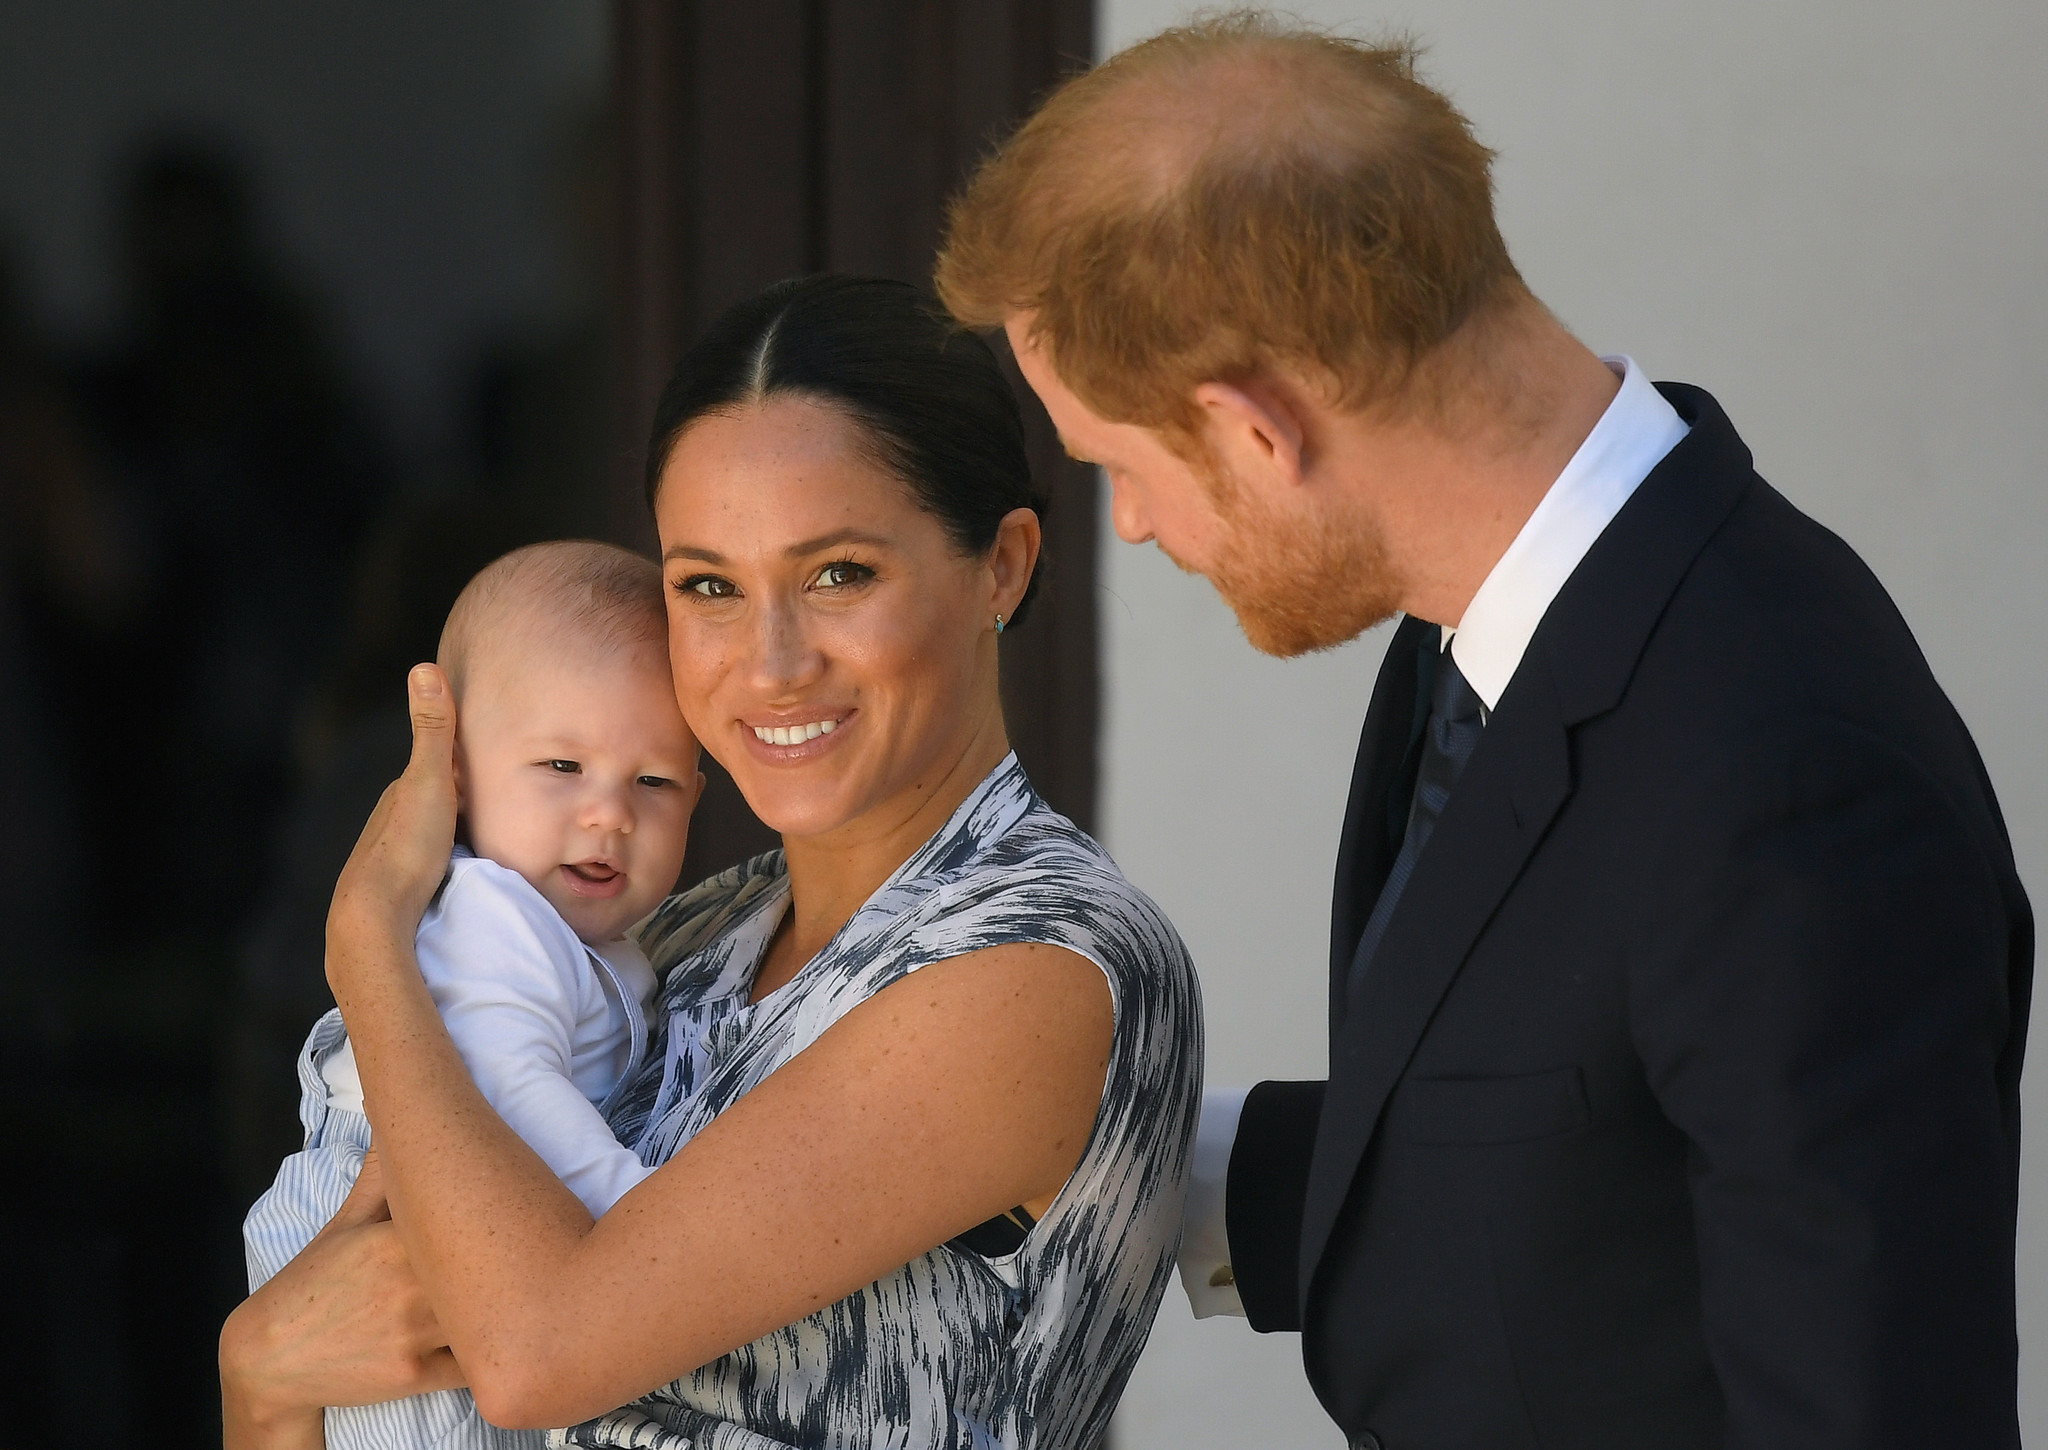 Meghan Markle's attempts to maintain baby Archie's privacy reportedly facto...